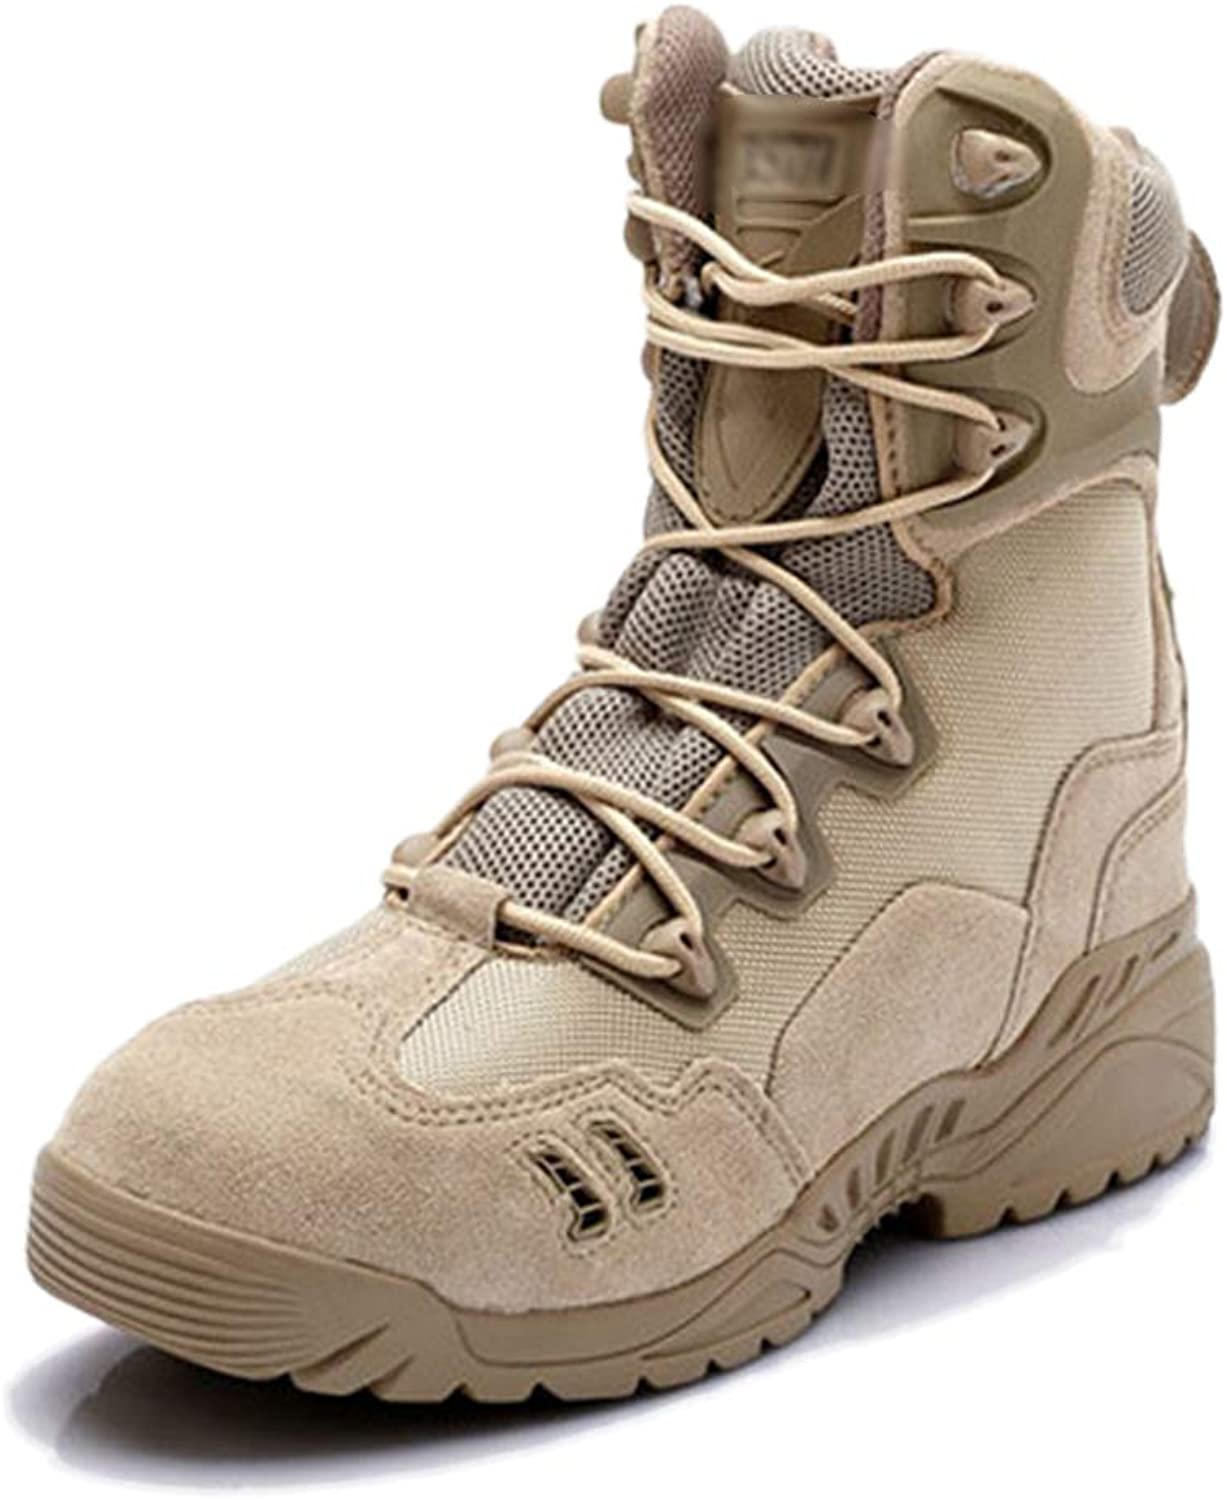 Men's Combat Tactics Army Boots Desert Assault Trained shoes Special Forces Military Police Armed Boot Mountaineering shoes